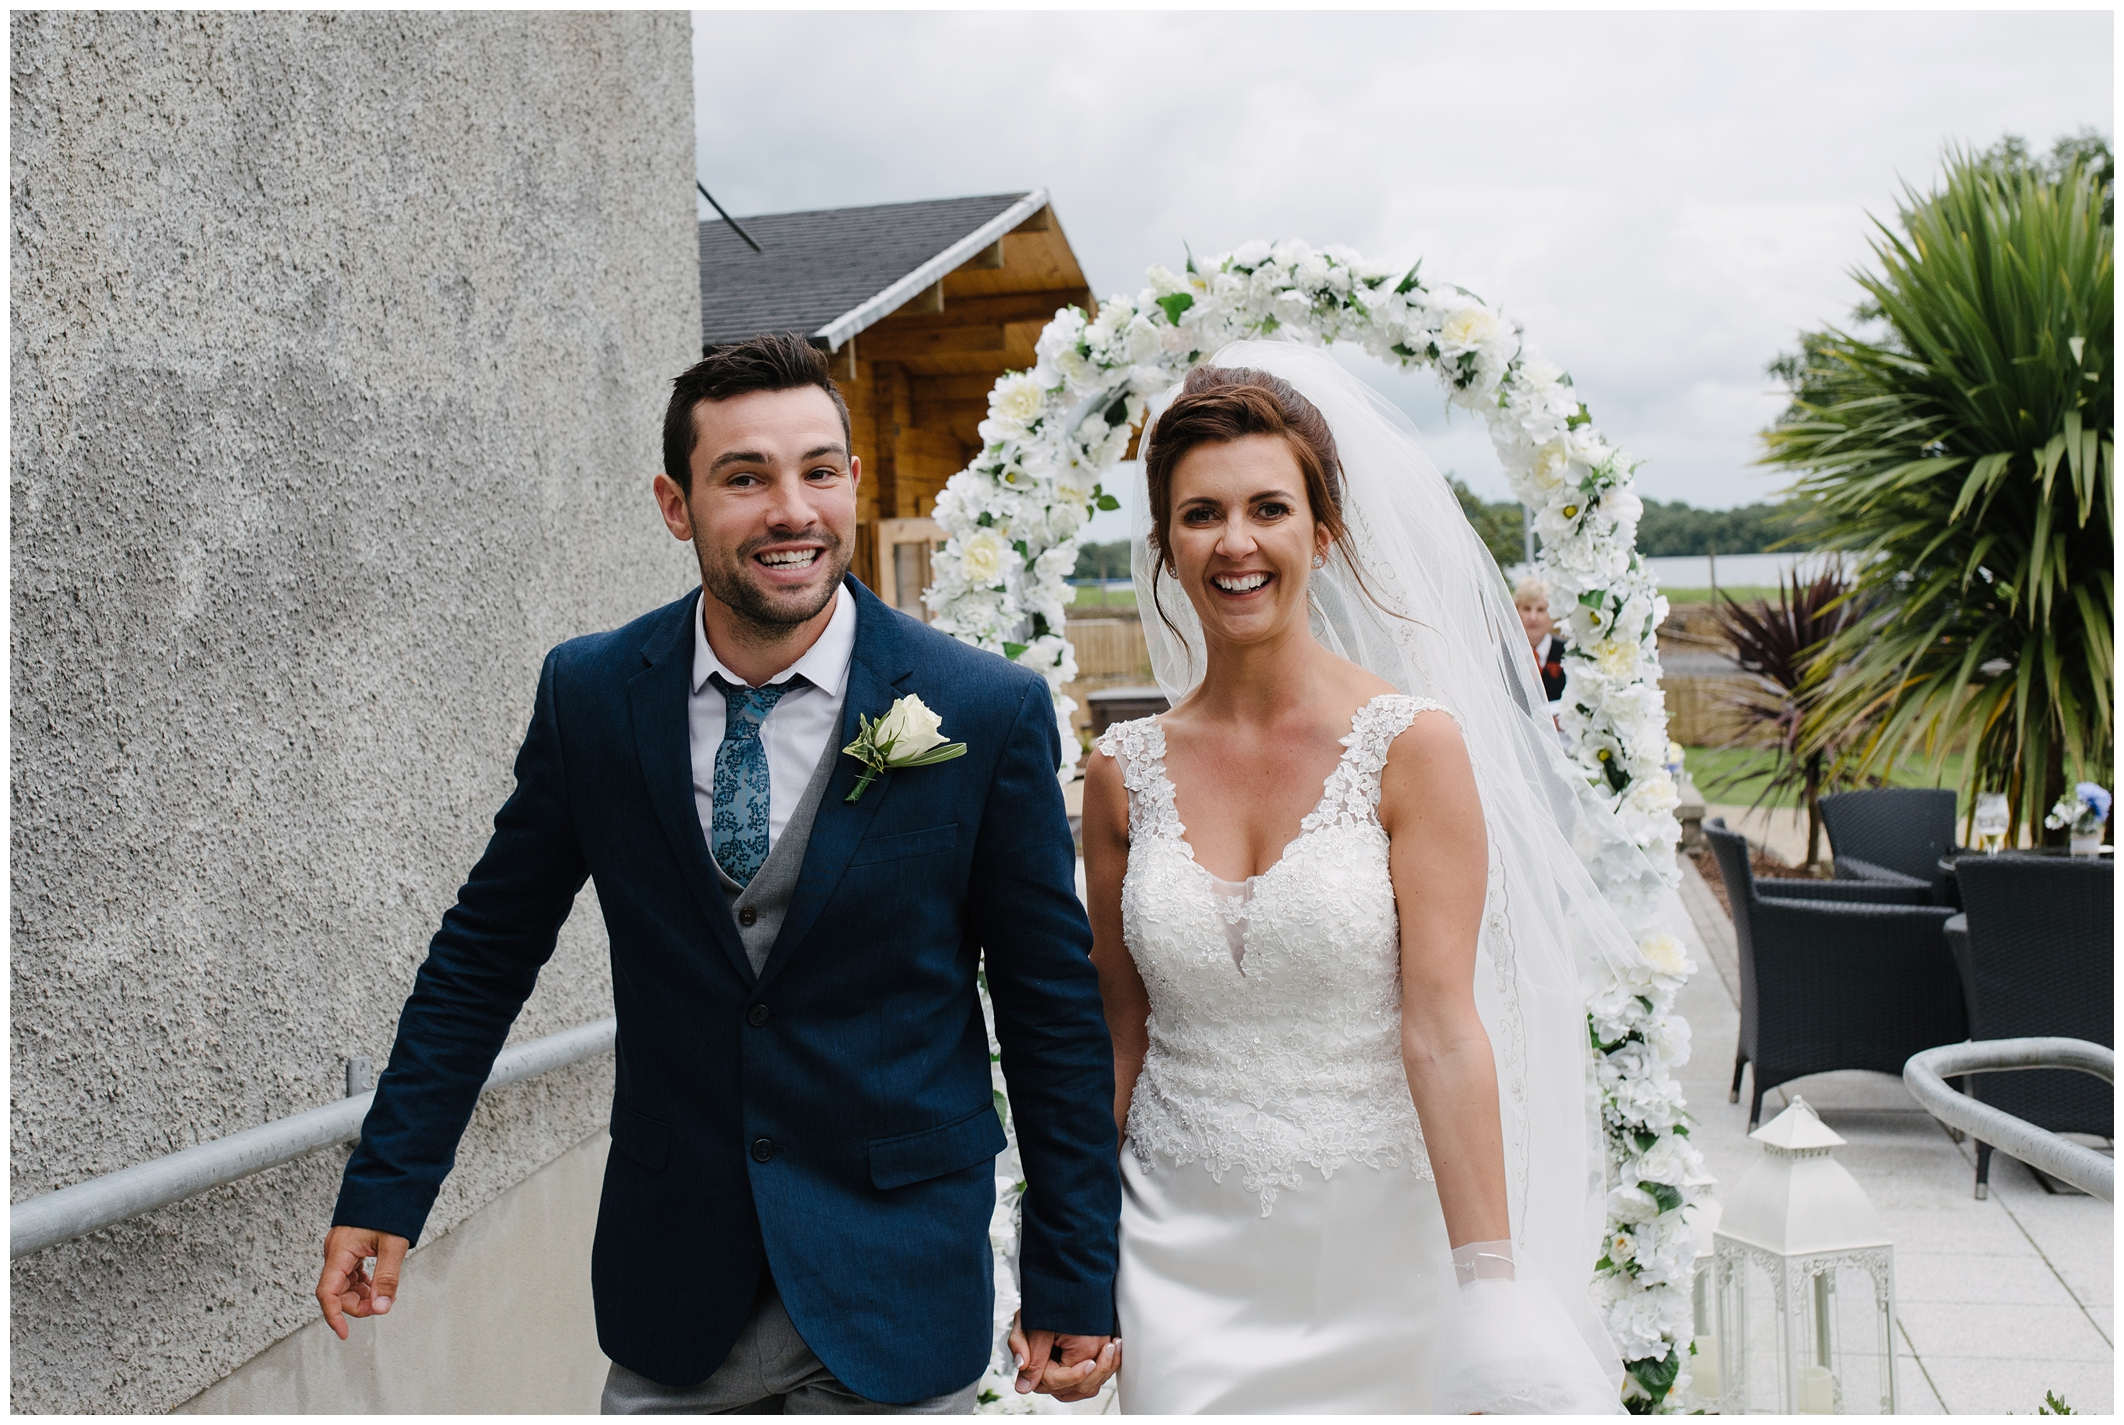 Lynsey_Andy_Rossharbour_Fermanagh_wedding_jude_browne_photography_0131.jpg